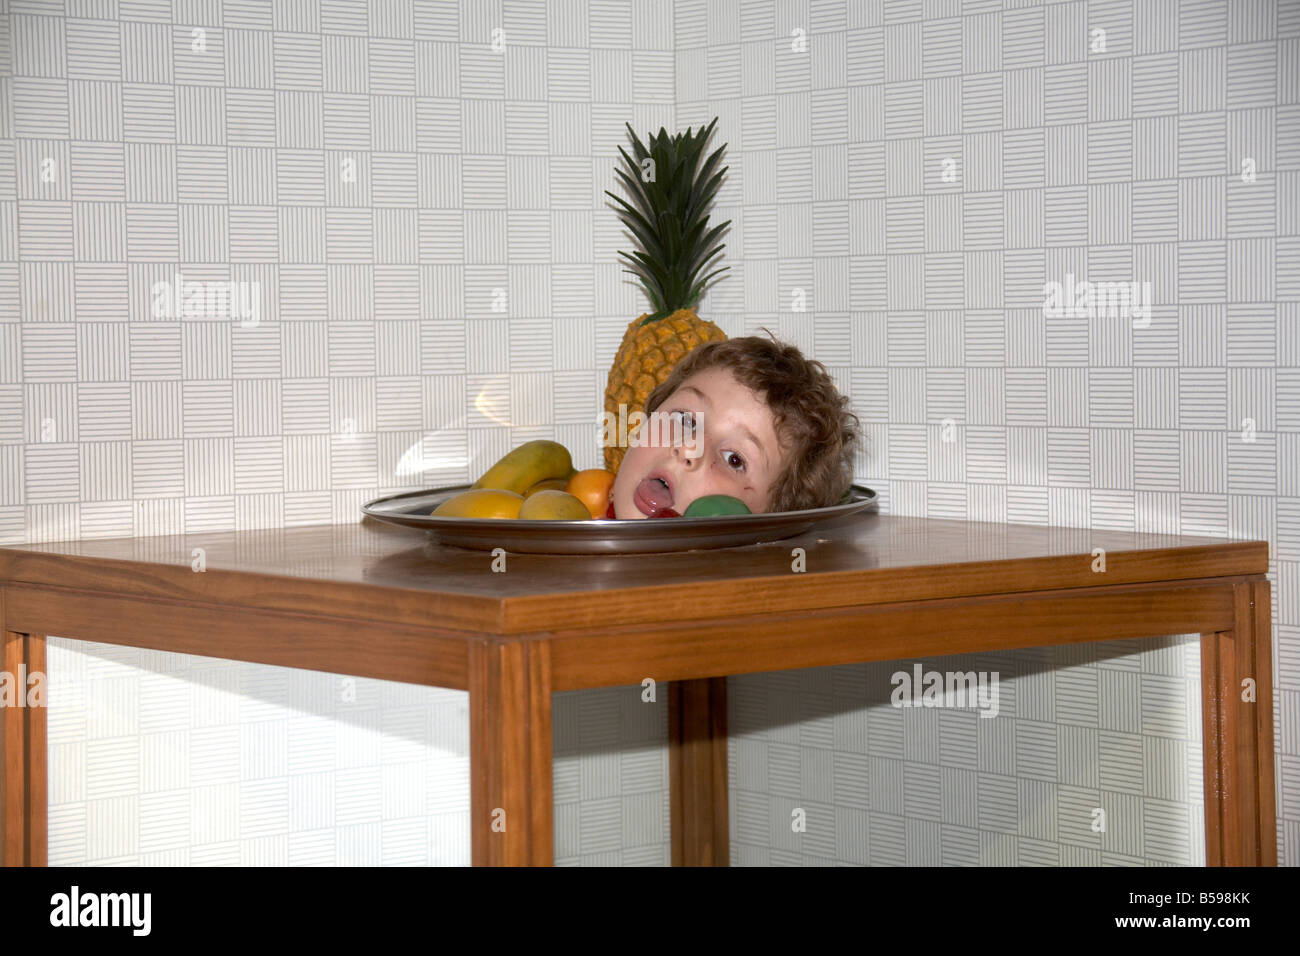 illusion table separate head on plate fruits young boy in Brisbane Queensland QLD Australia - Stock Image